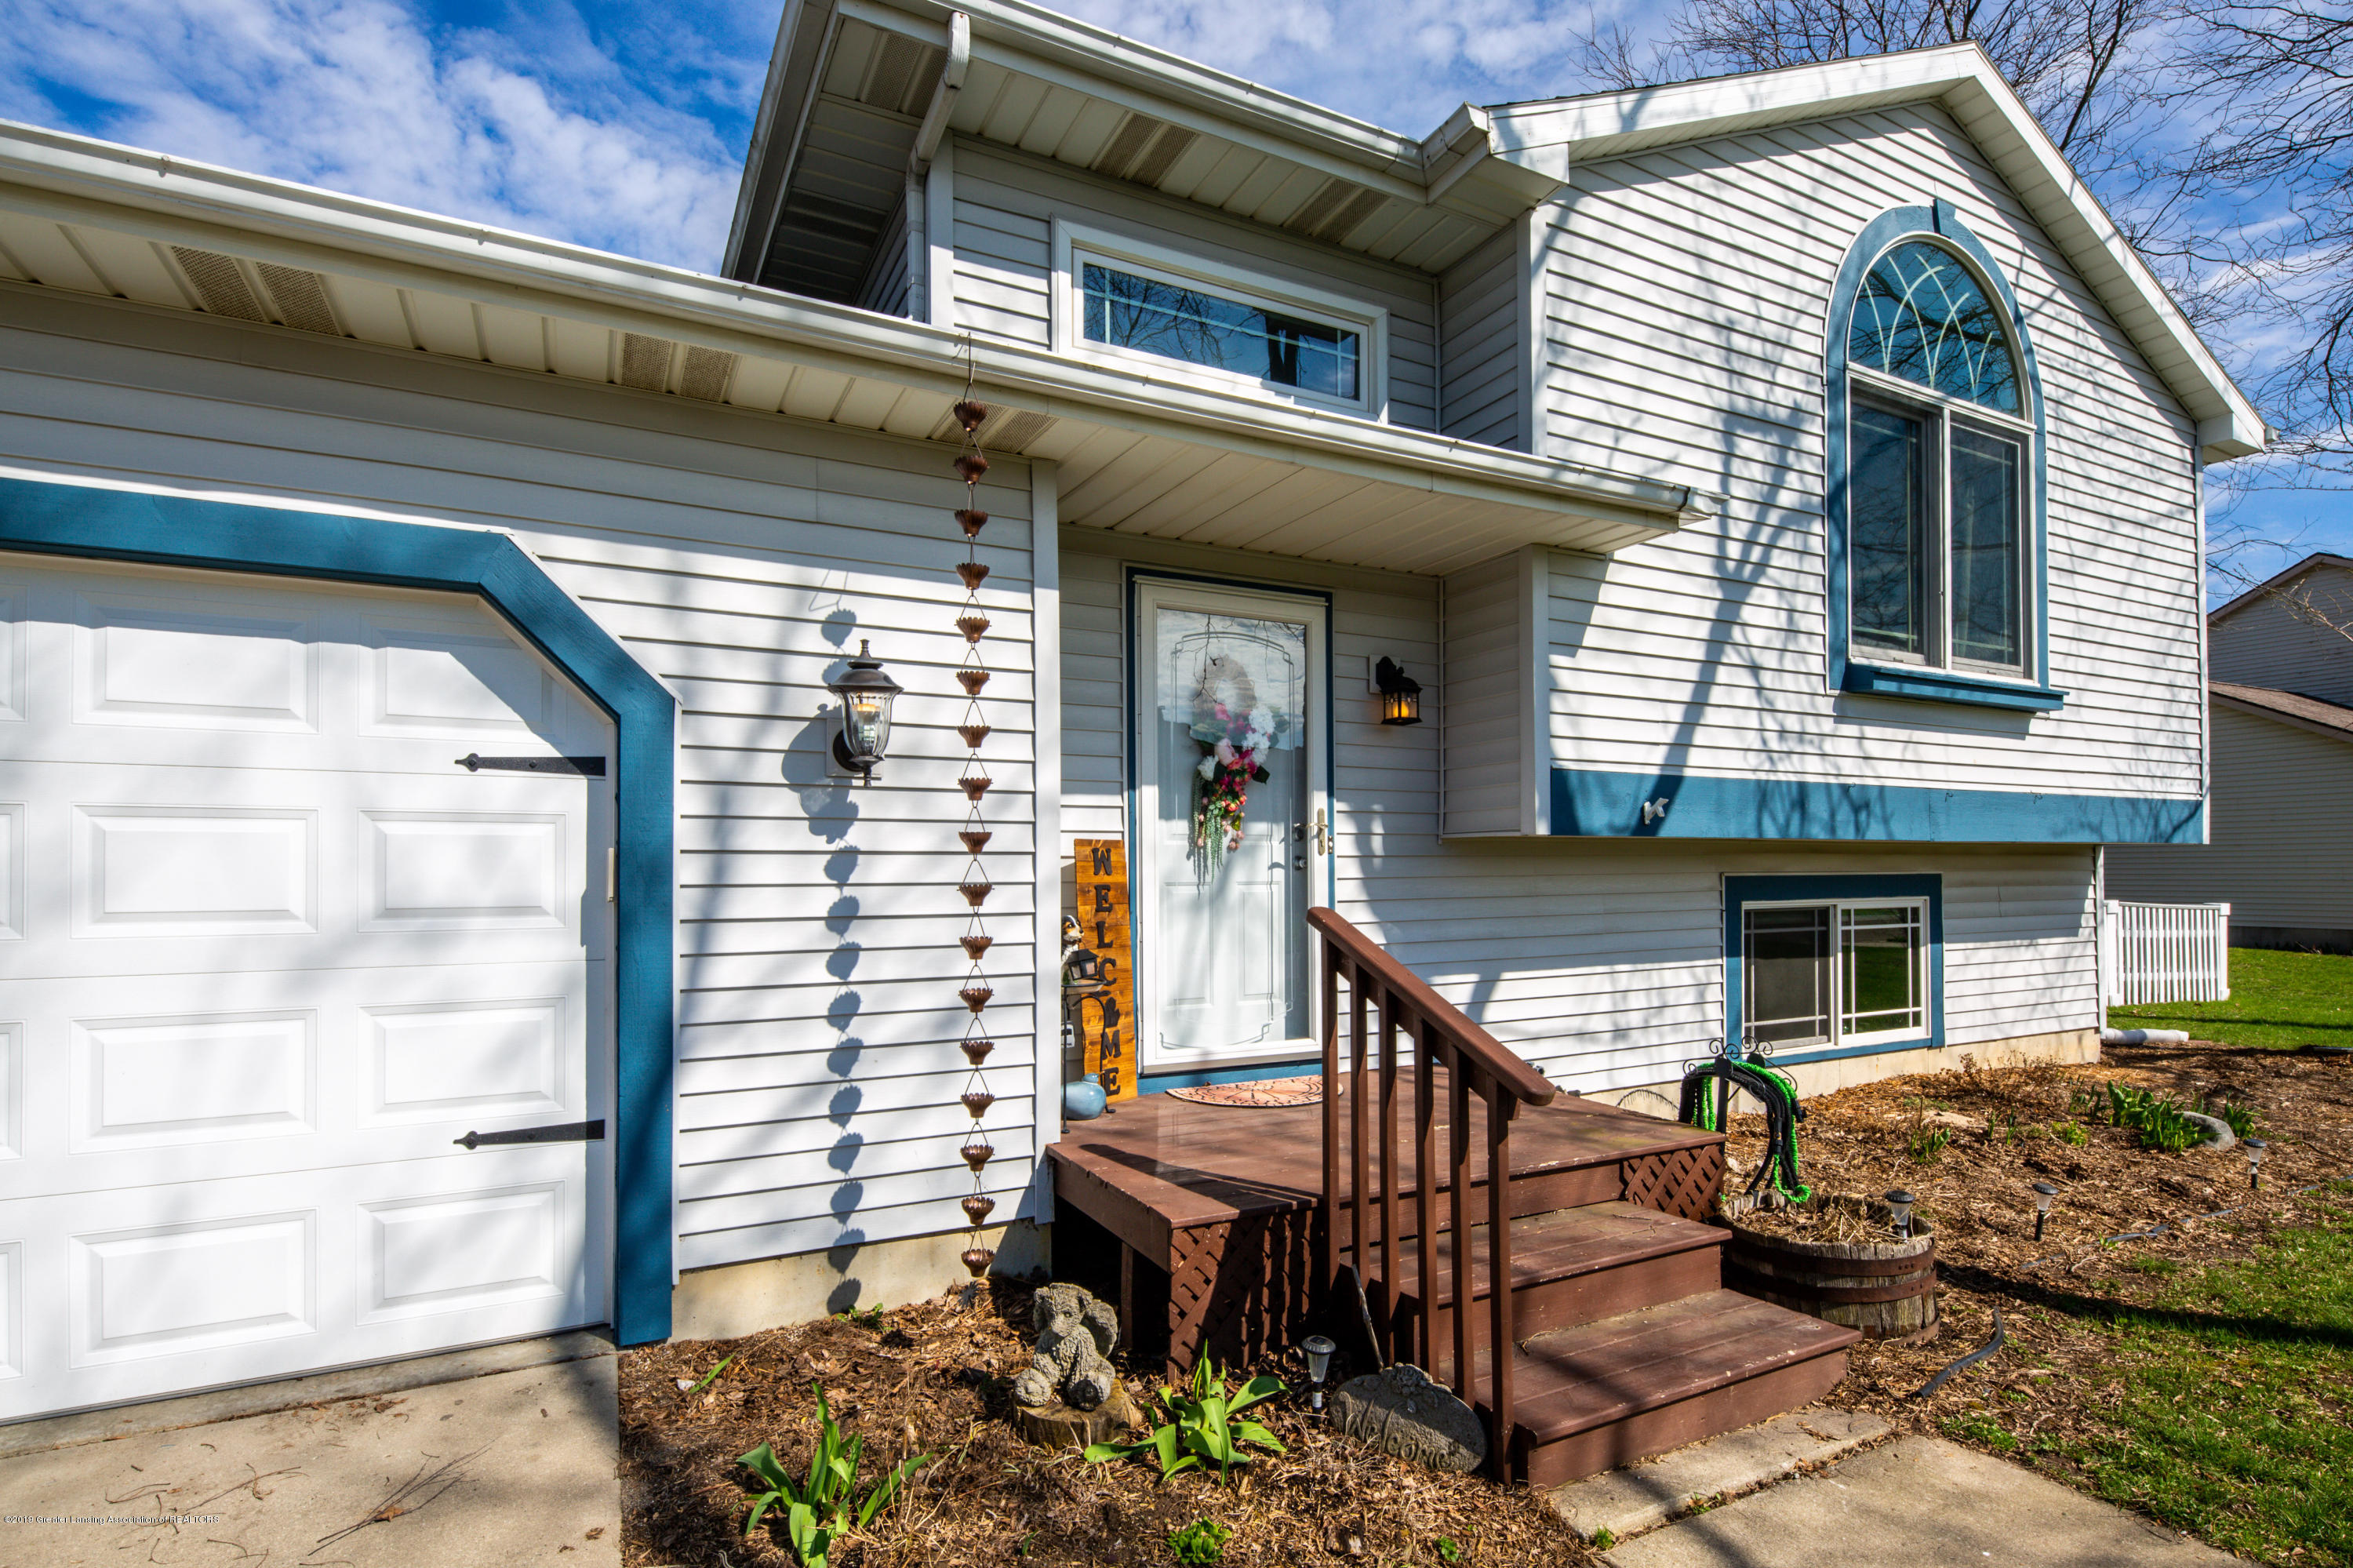 2450 Featherstone Dr - 20190421-942A2190 - 9